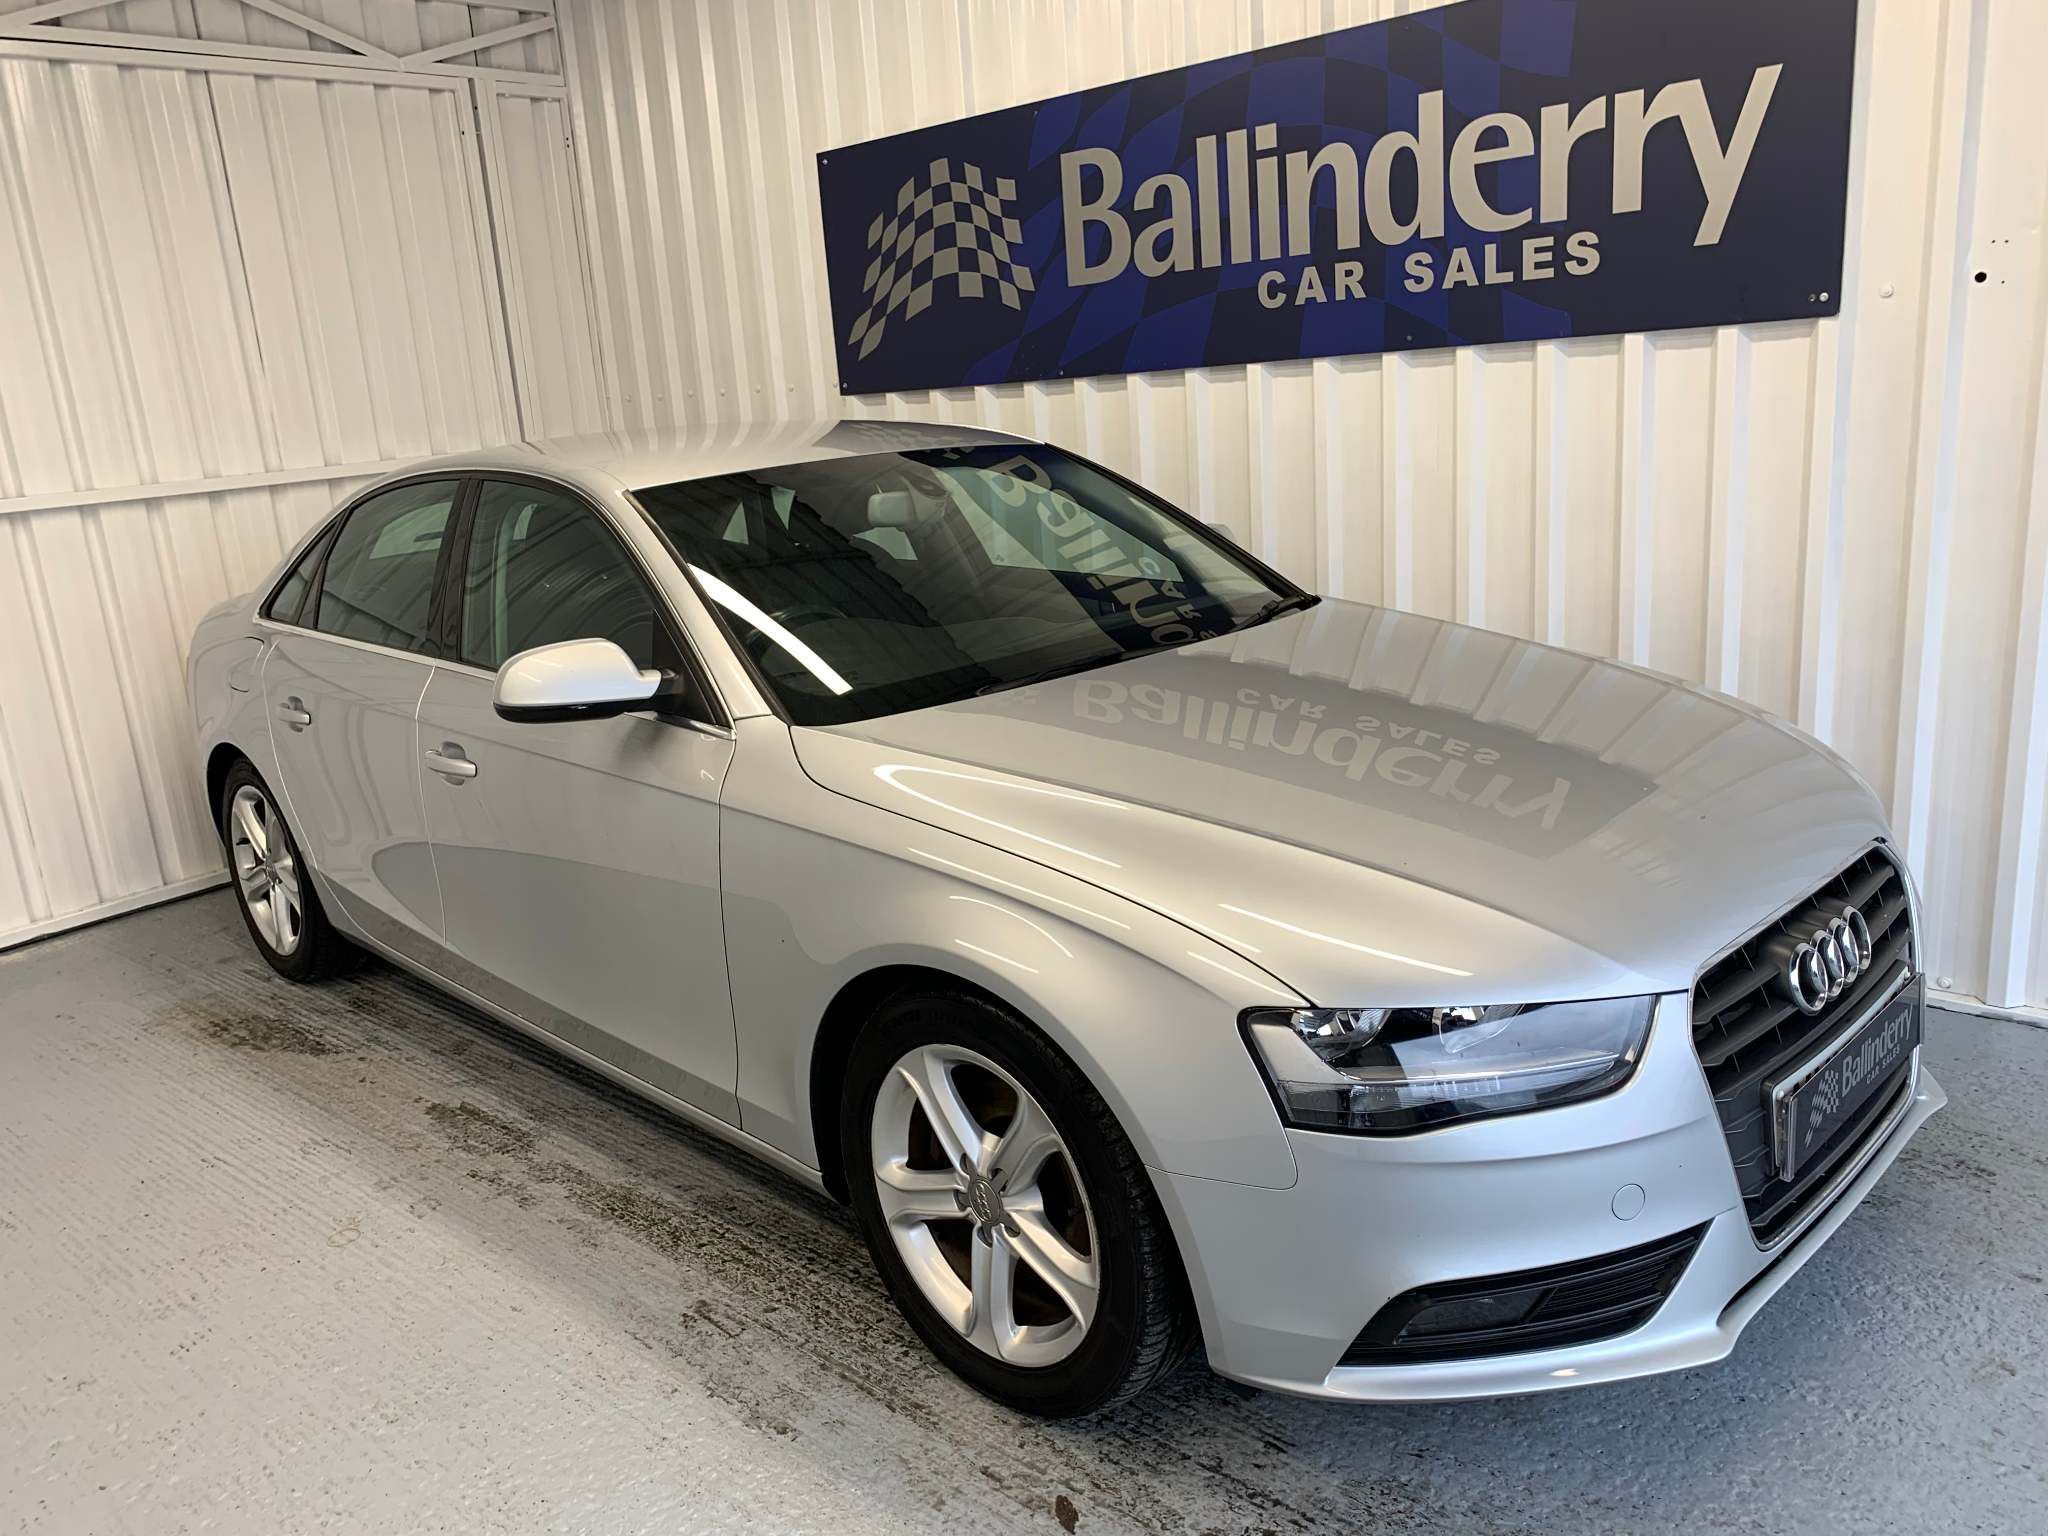 2012 AUDI A4 2.0 TDI SE Diesel Manual FULL HISTORY-NEW TIMING BELT – Ballinderry Car Sales Moira